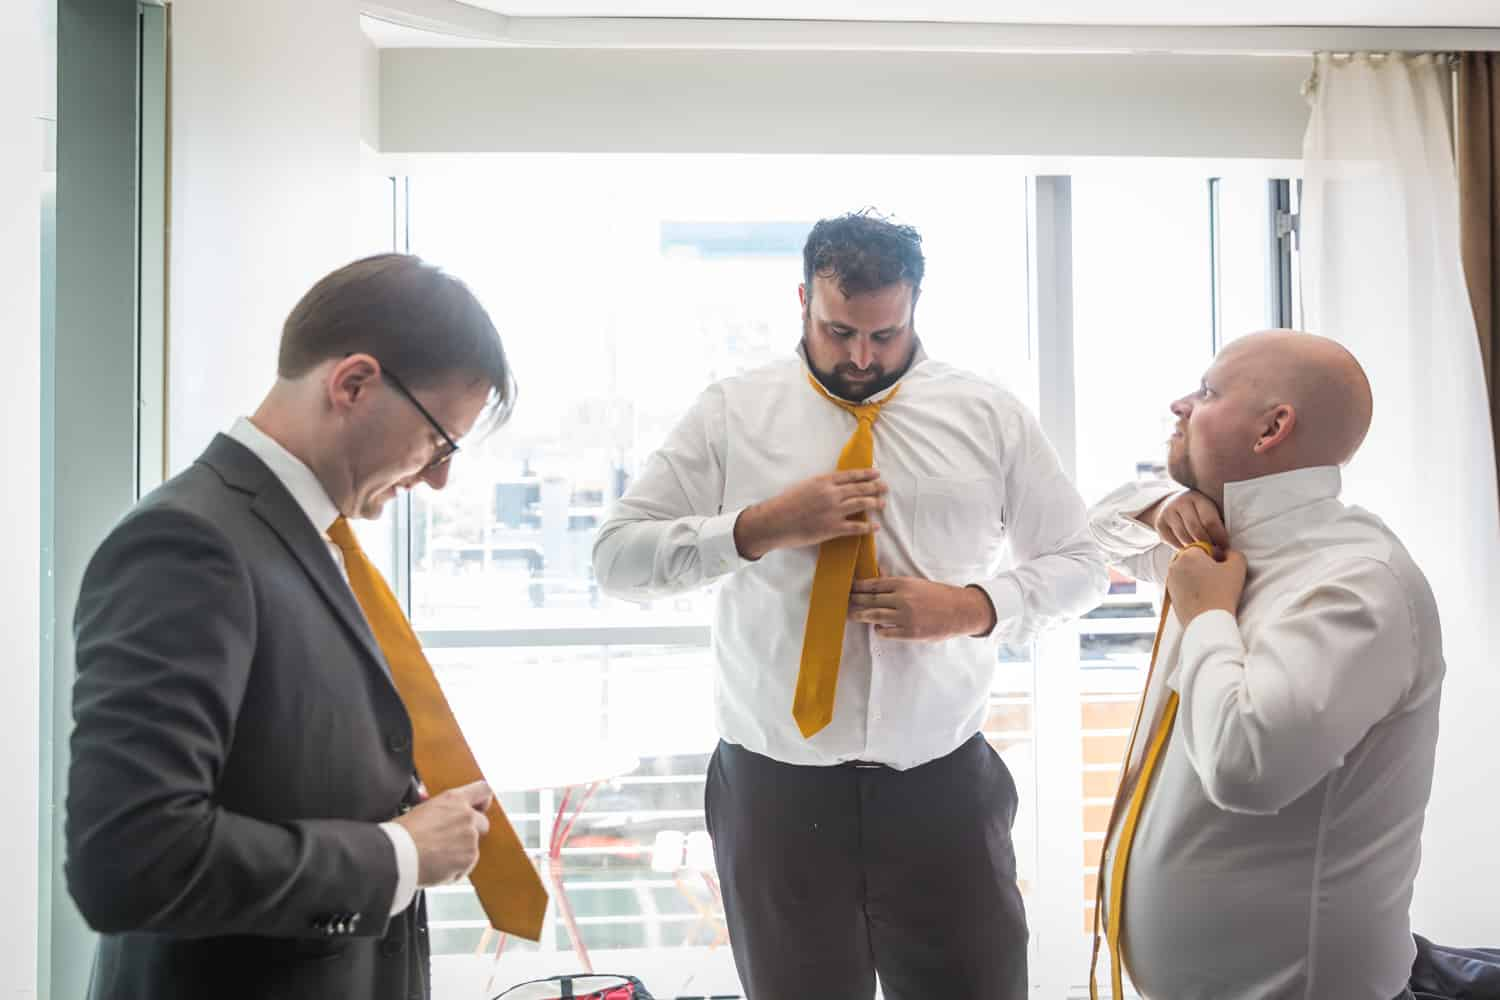 Groom and groomsmen fixing ties in front of window